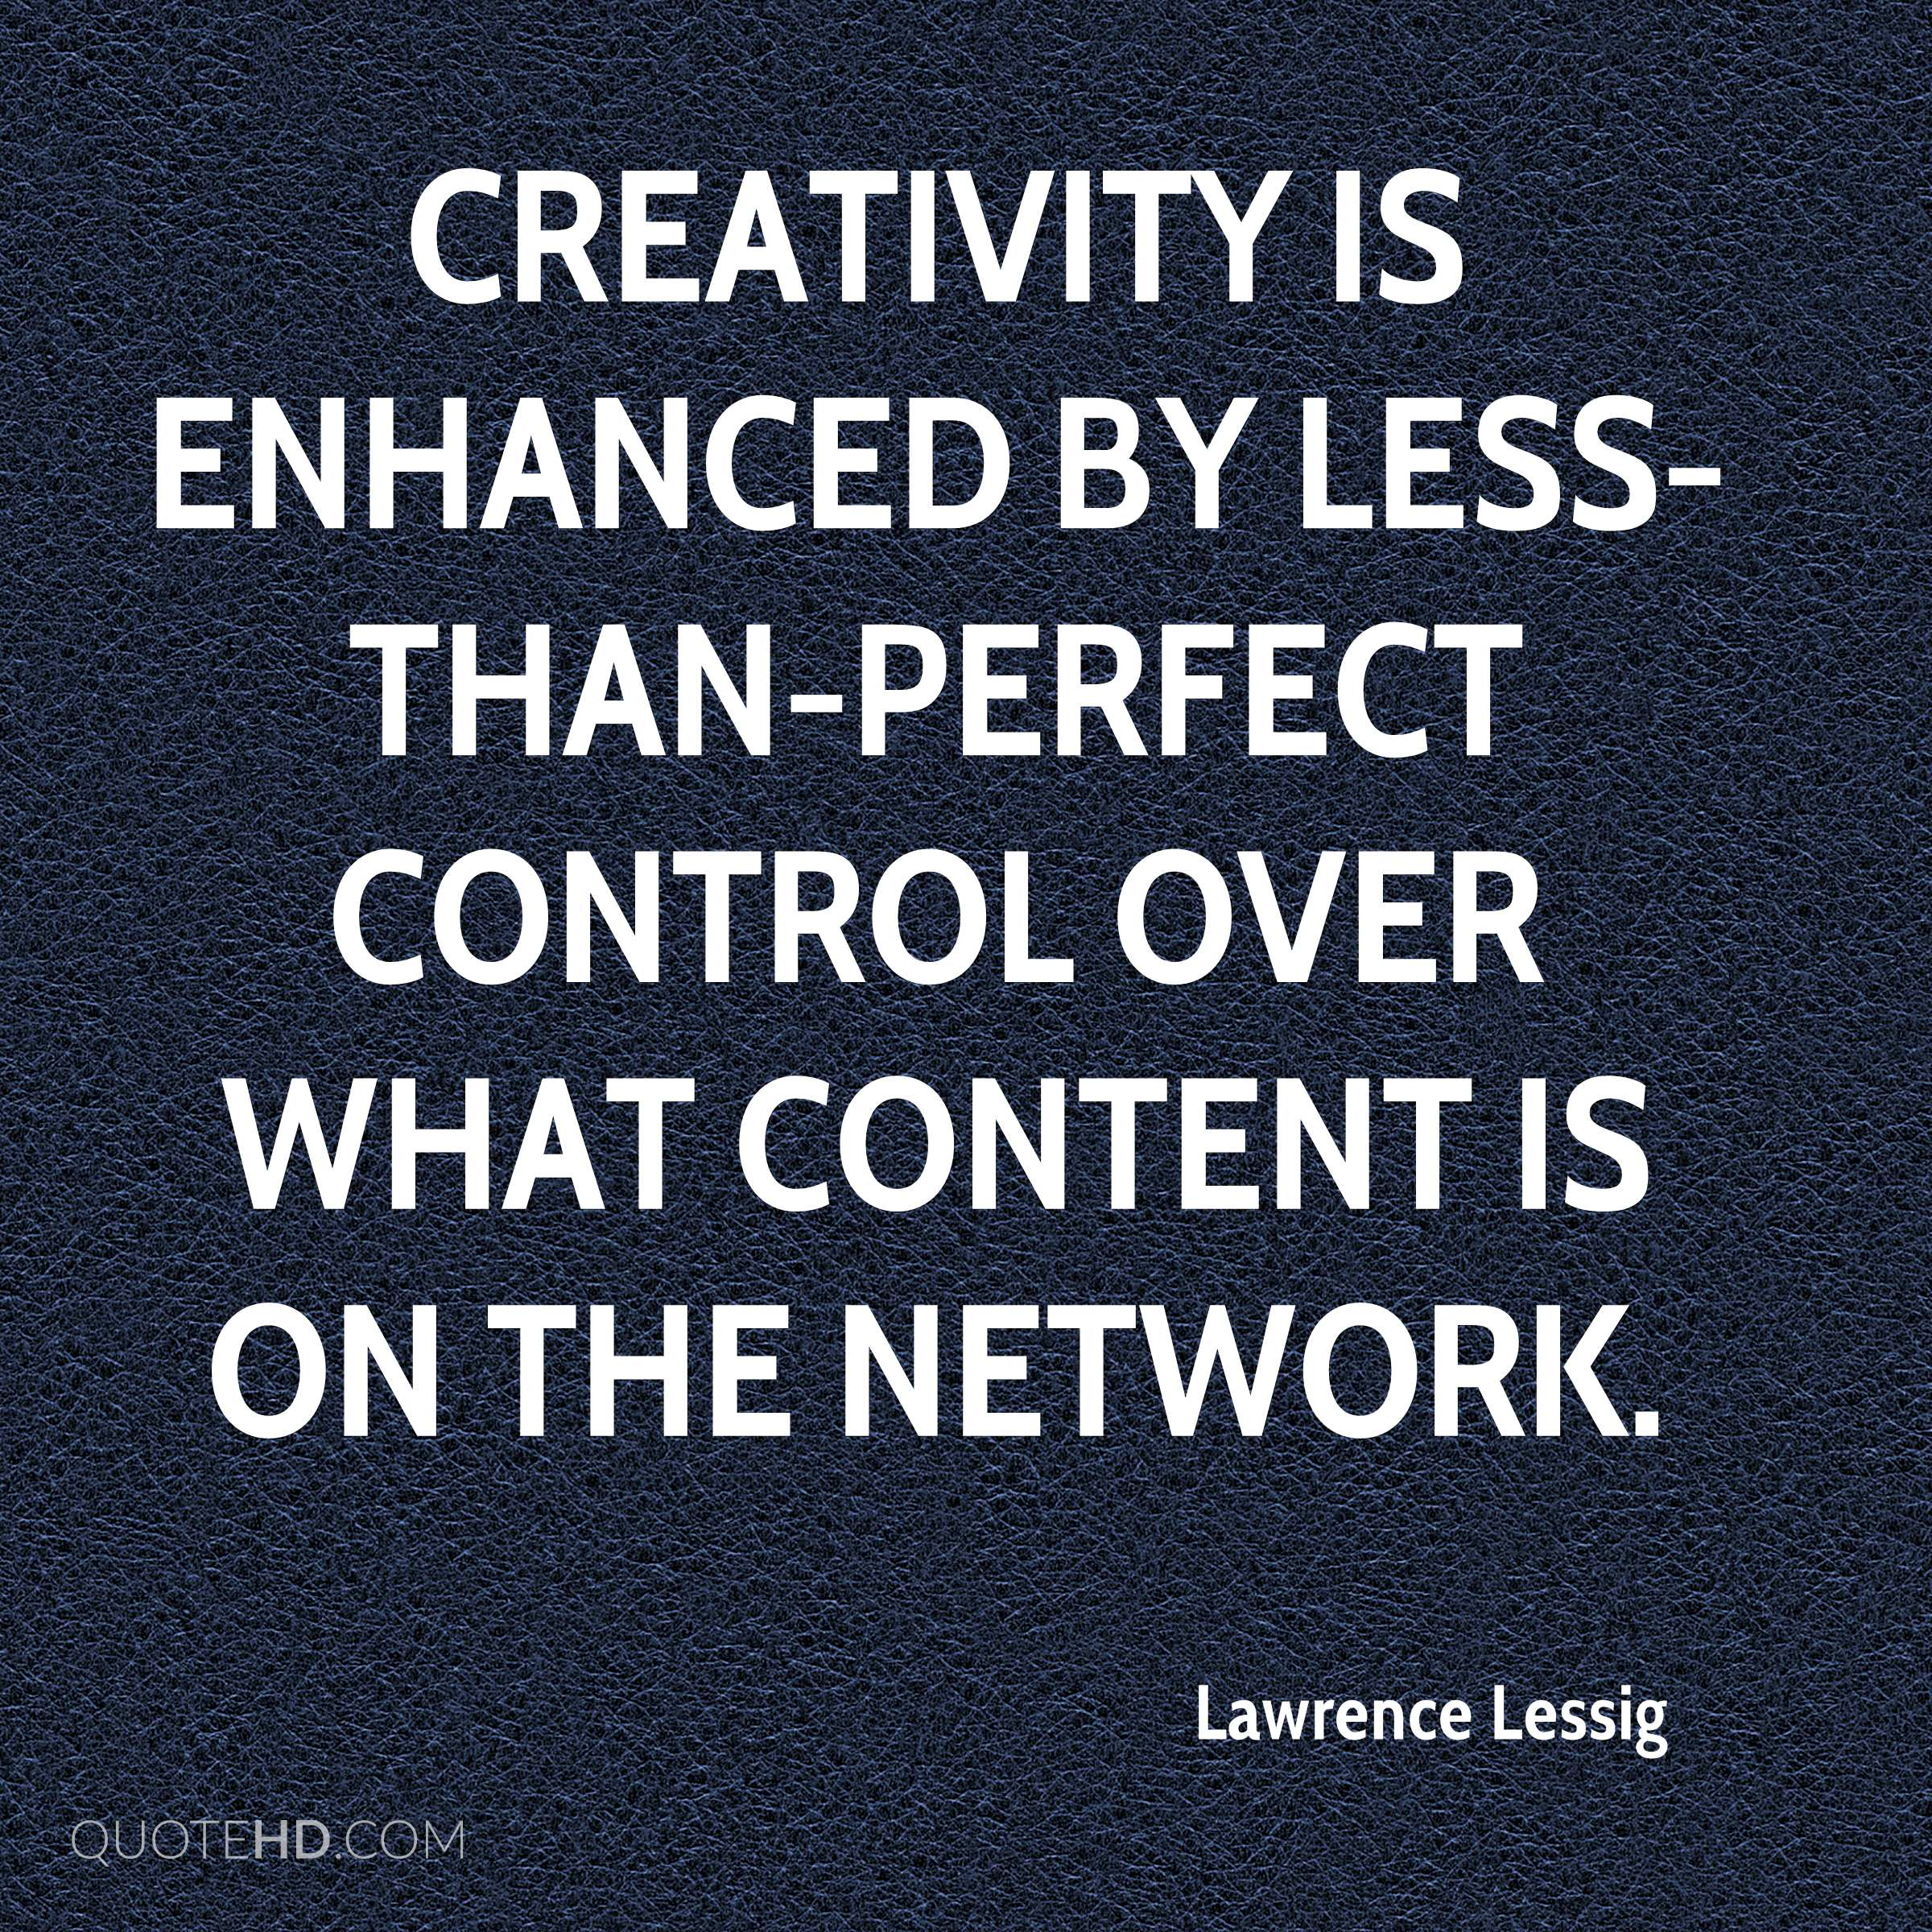 Creativity is enhanced by less-than-perfect control over what content is on the network.